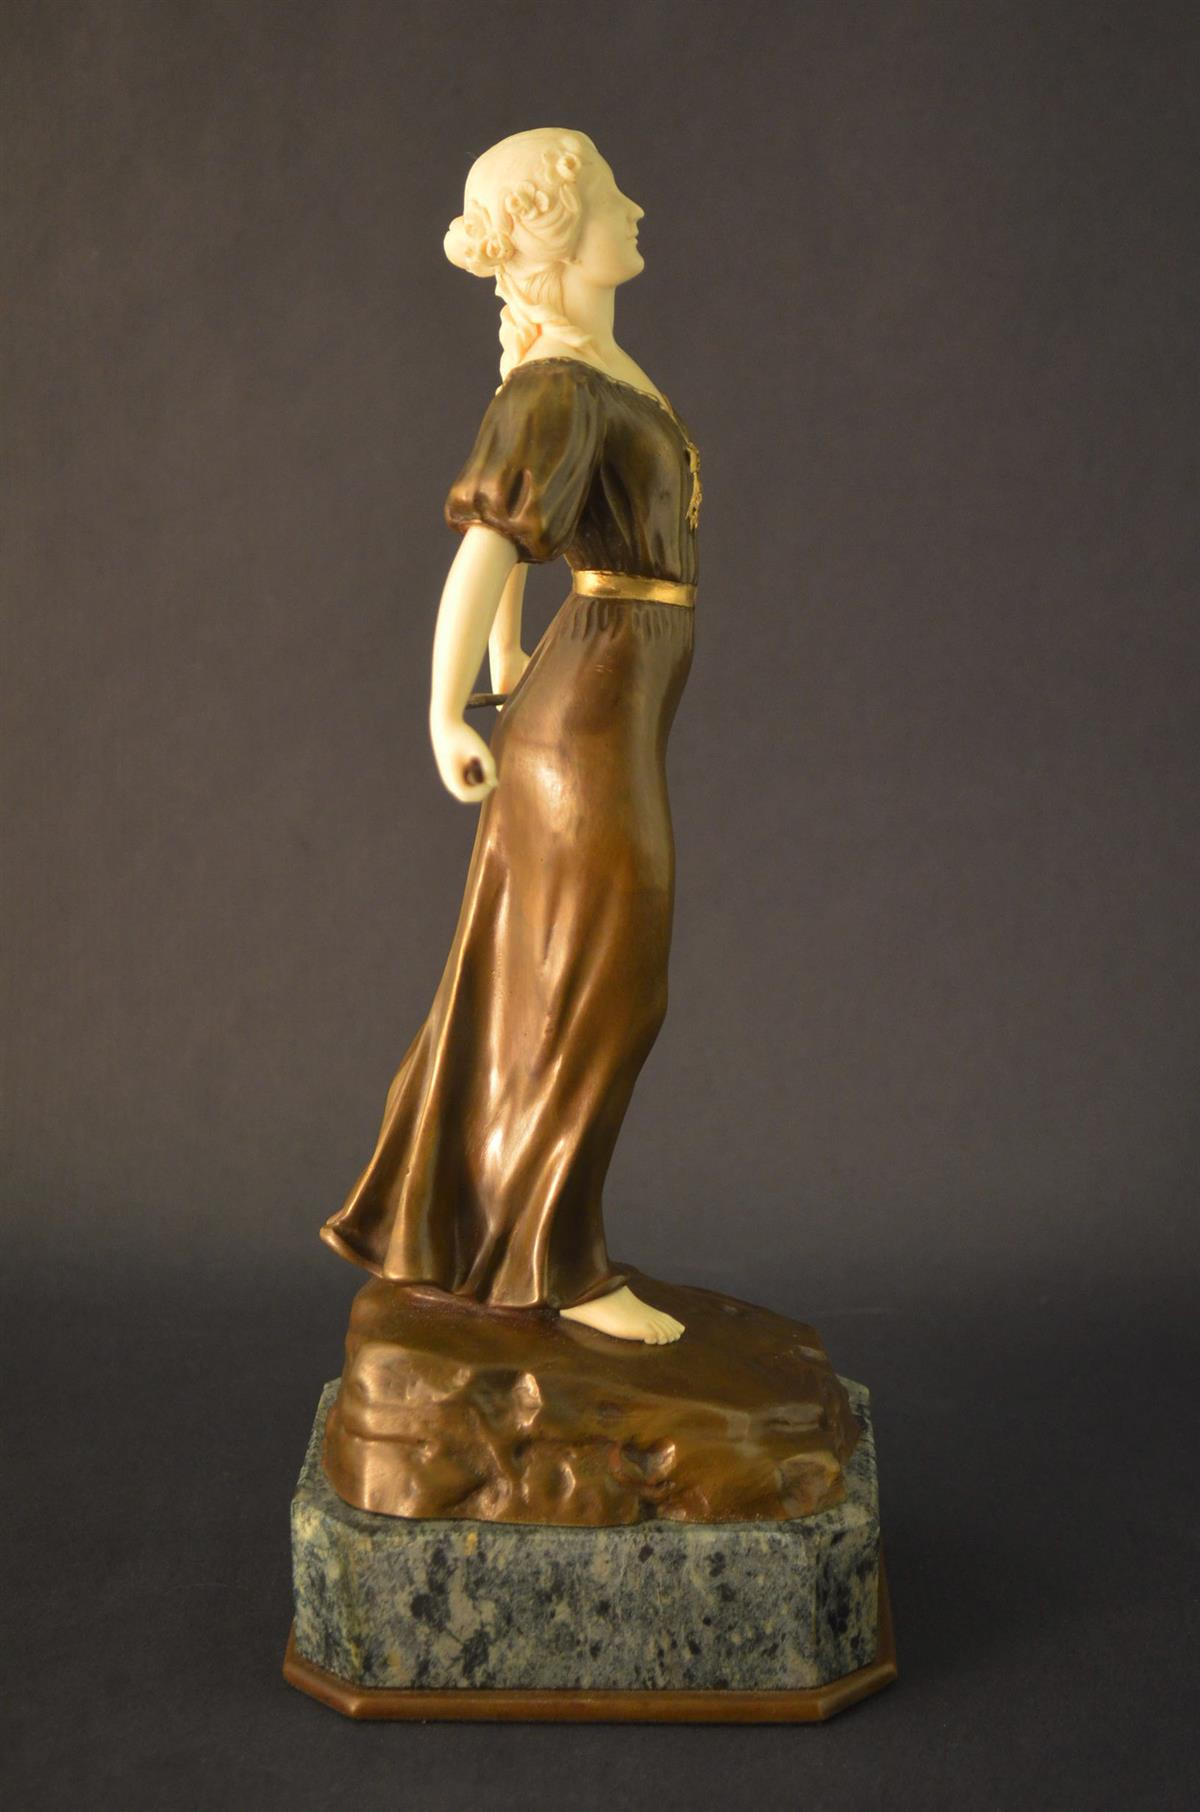 Luxury gifts Summer sculpture, bronze and ivory